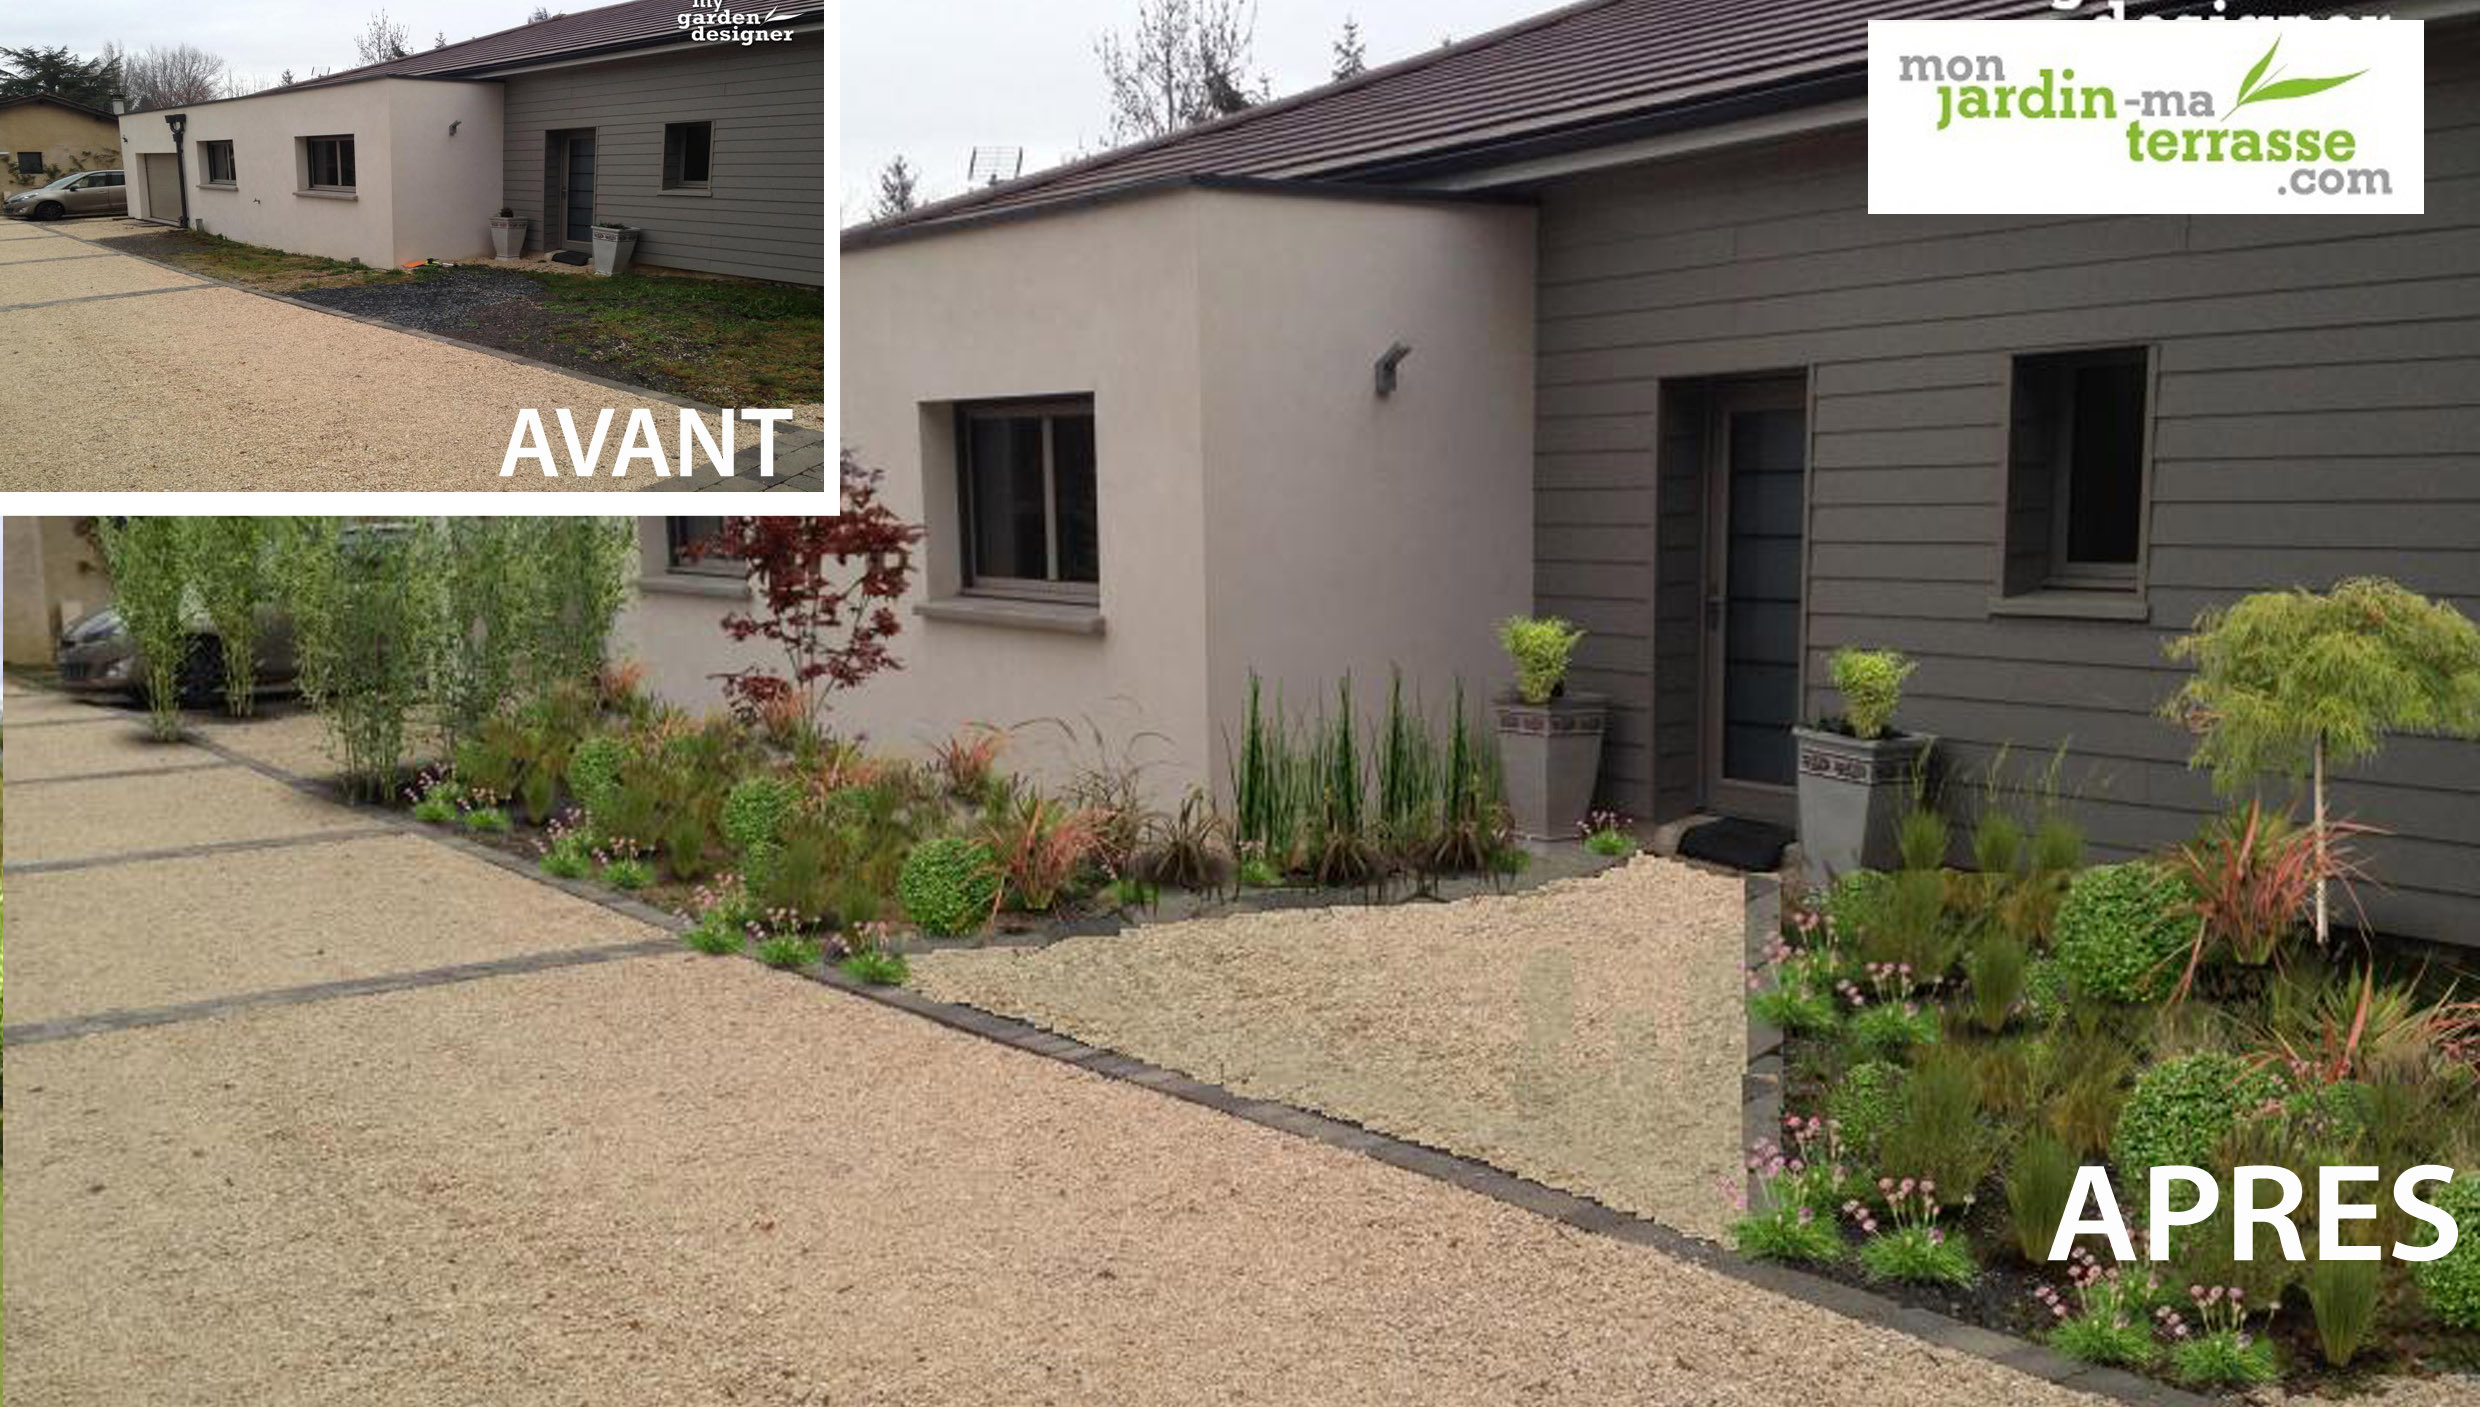 Am nagement du jardin de l entr e d une maison for Modele amenagement jardin